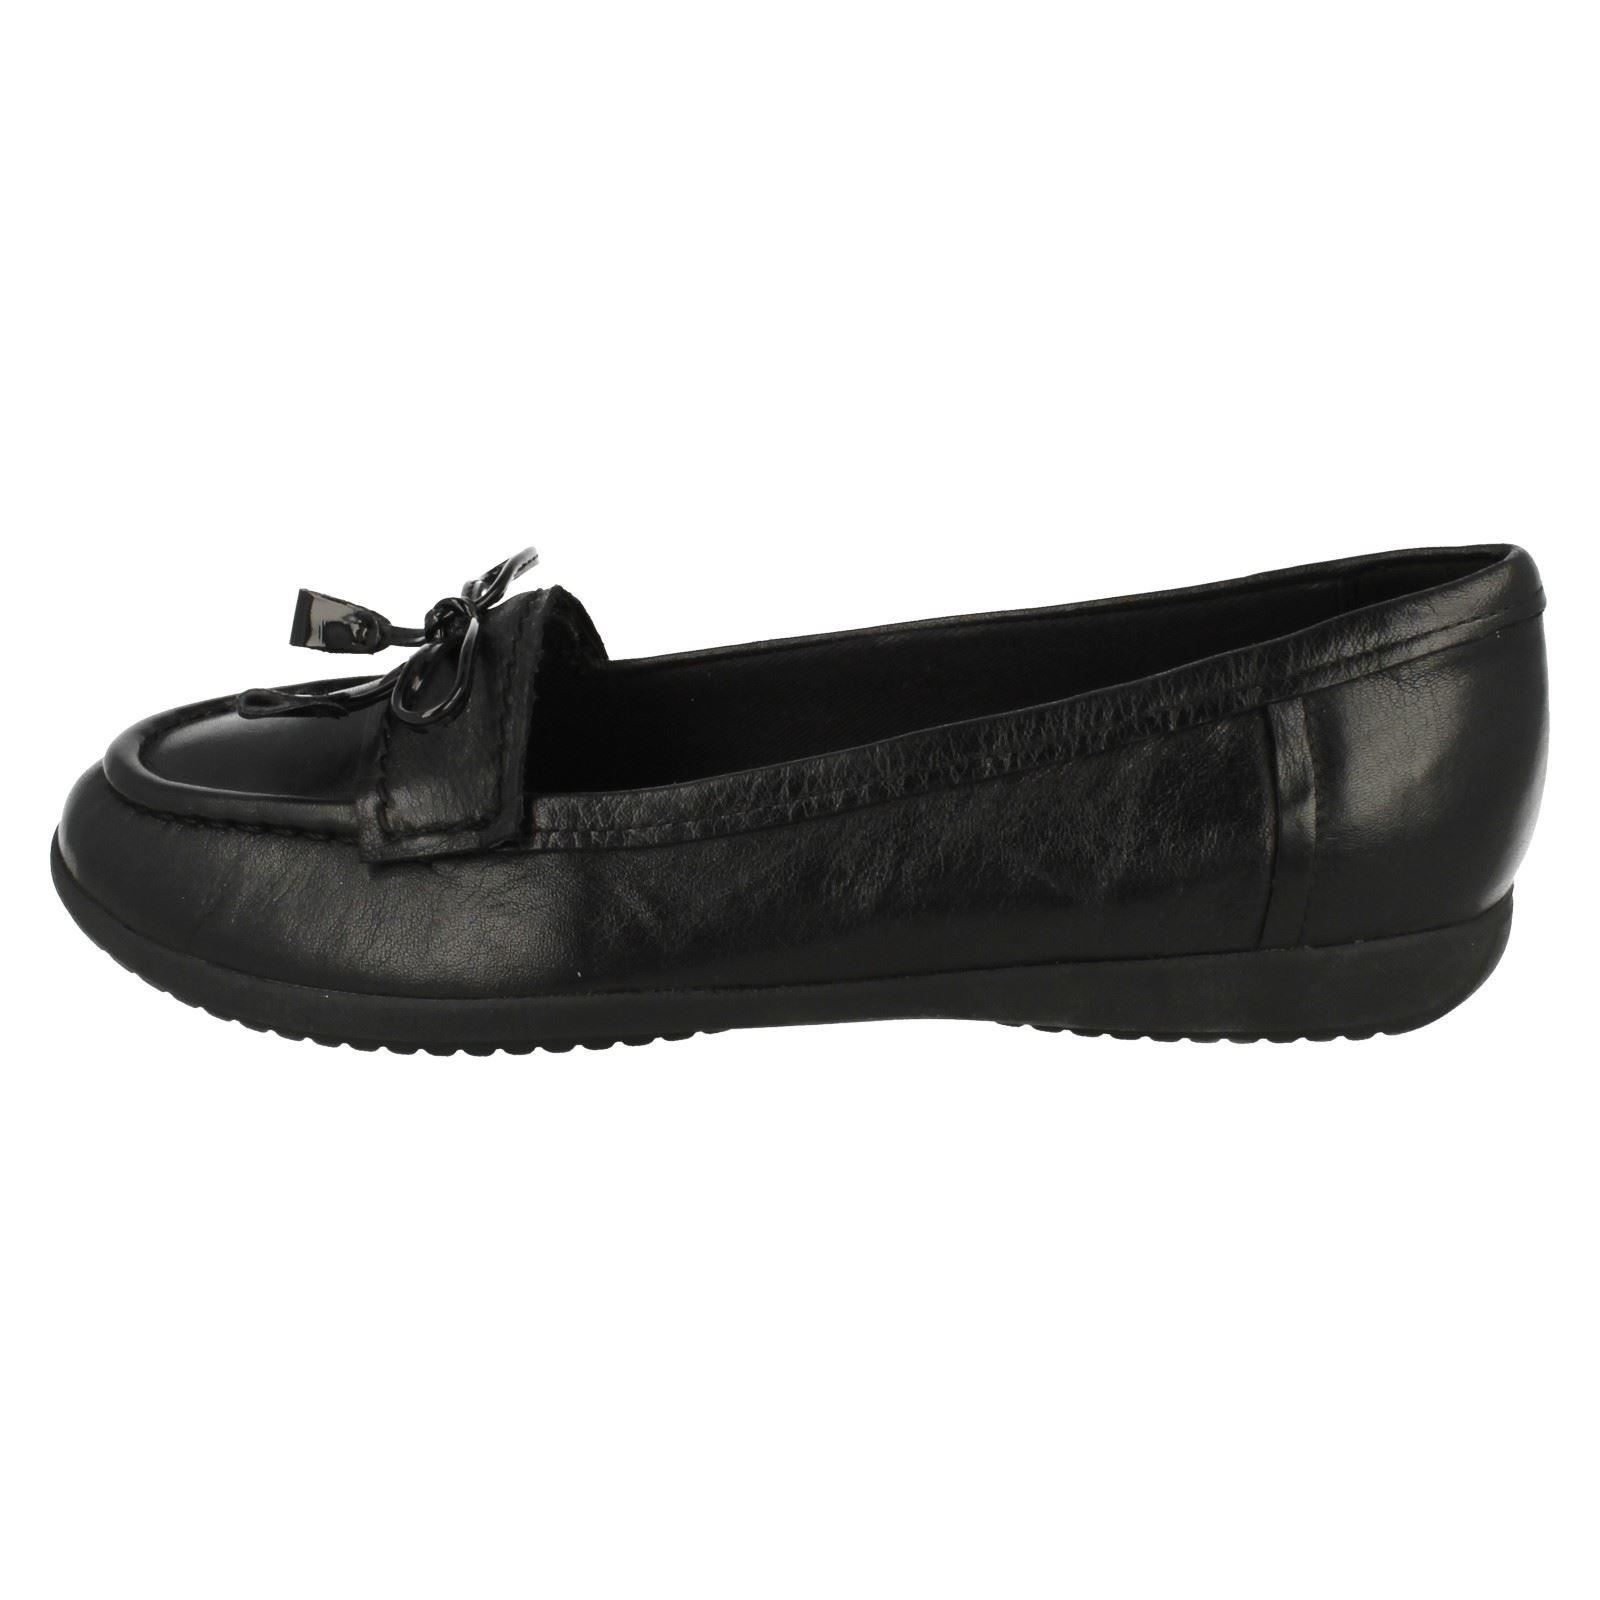 mesdames clarks moccasin style chaussures chaussures chaussures feya bloom d11135